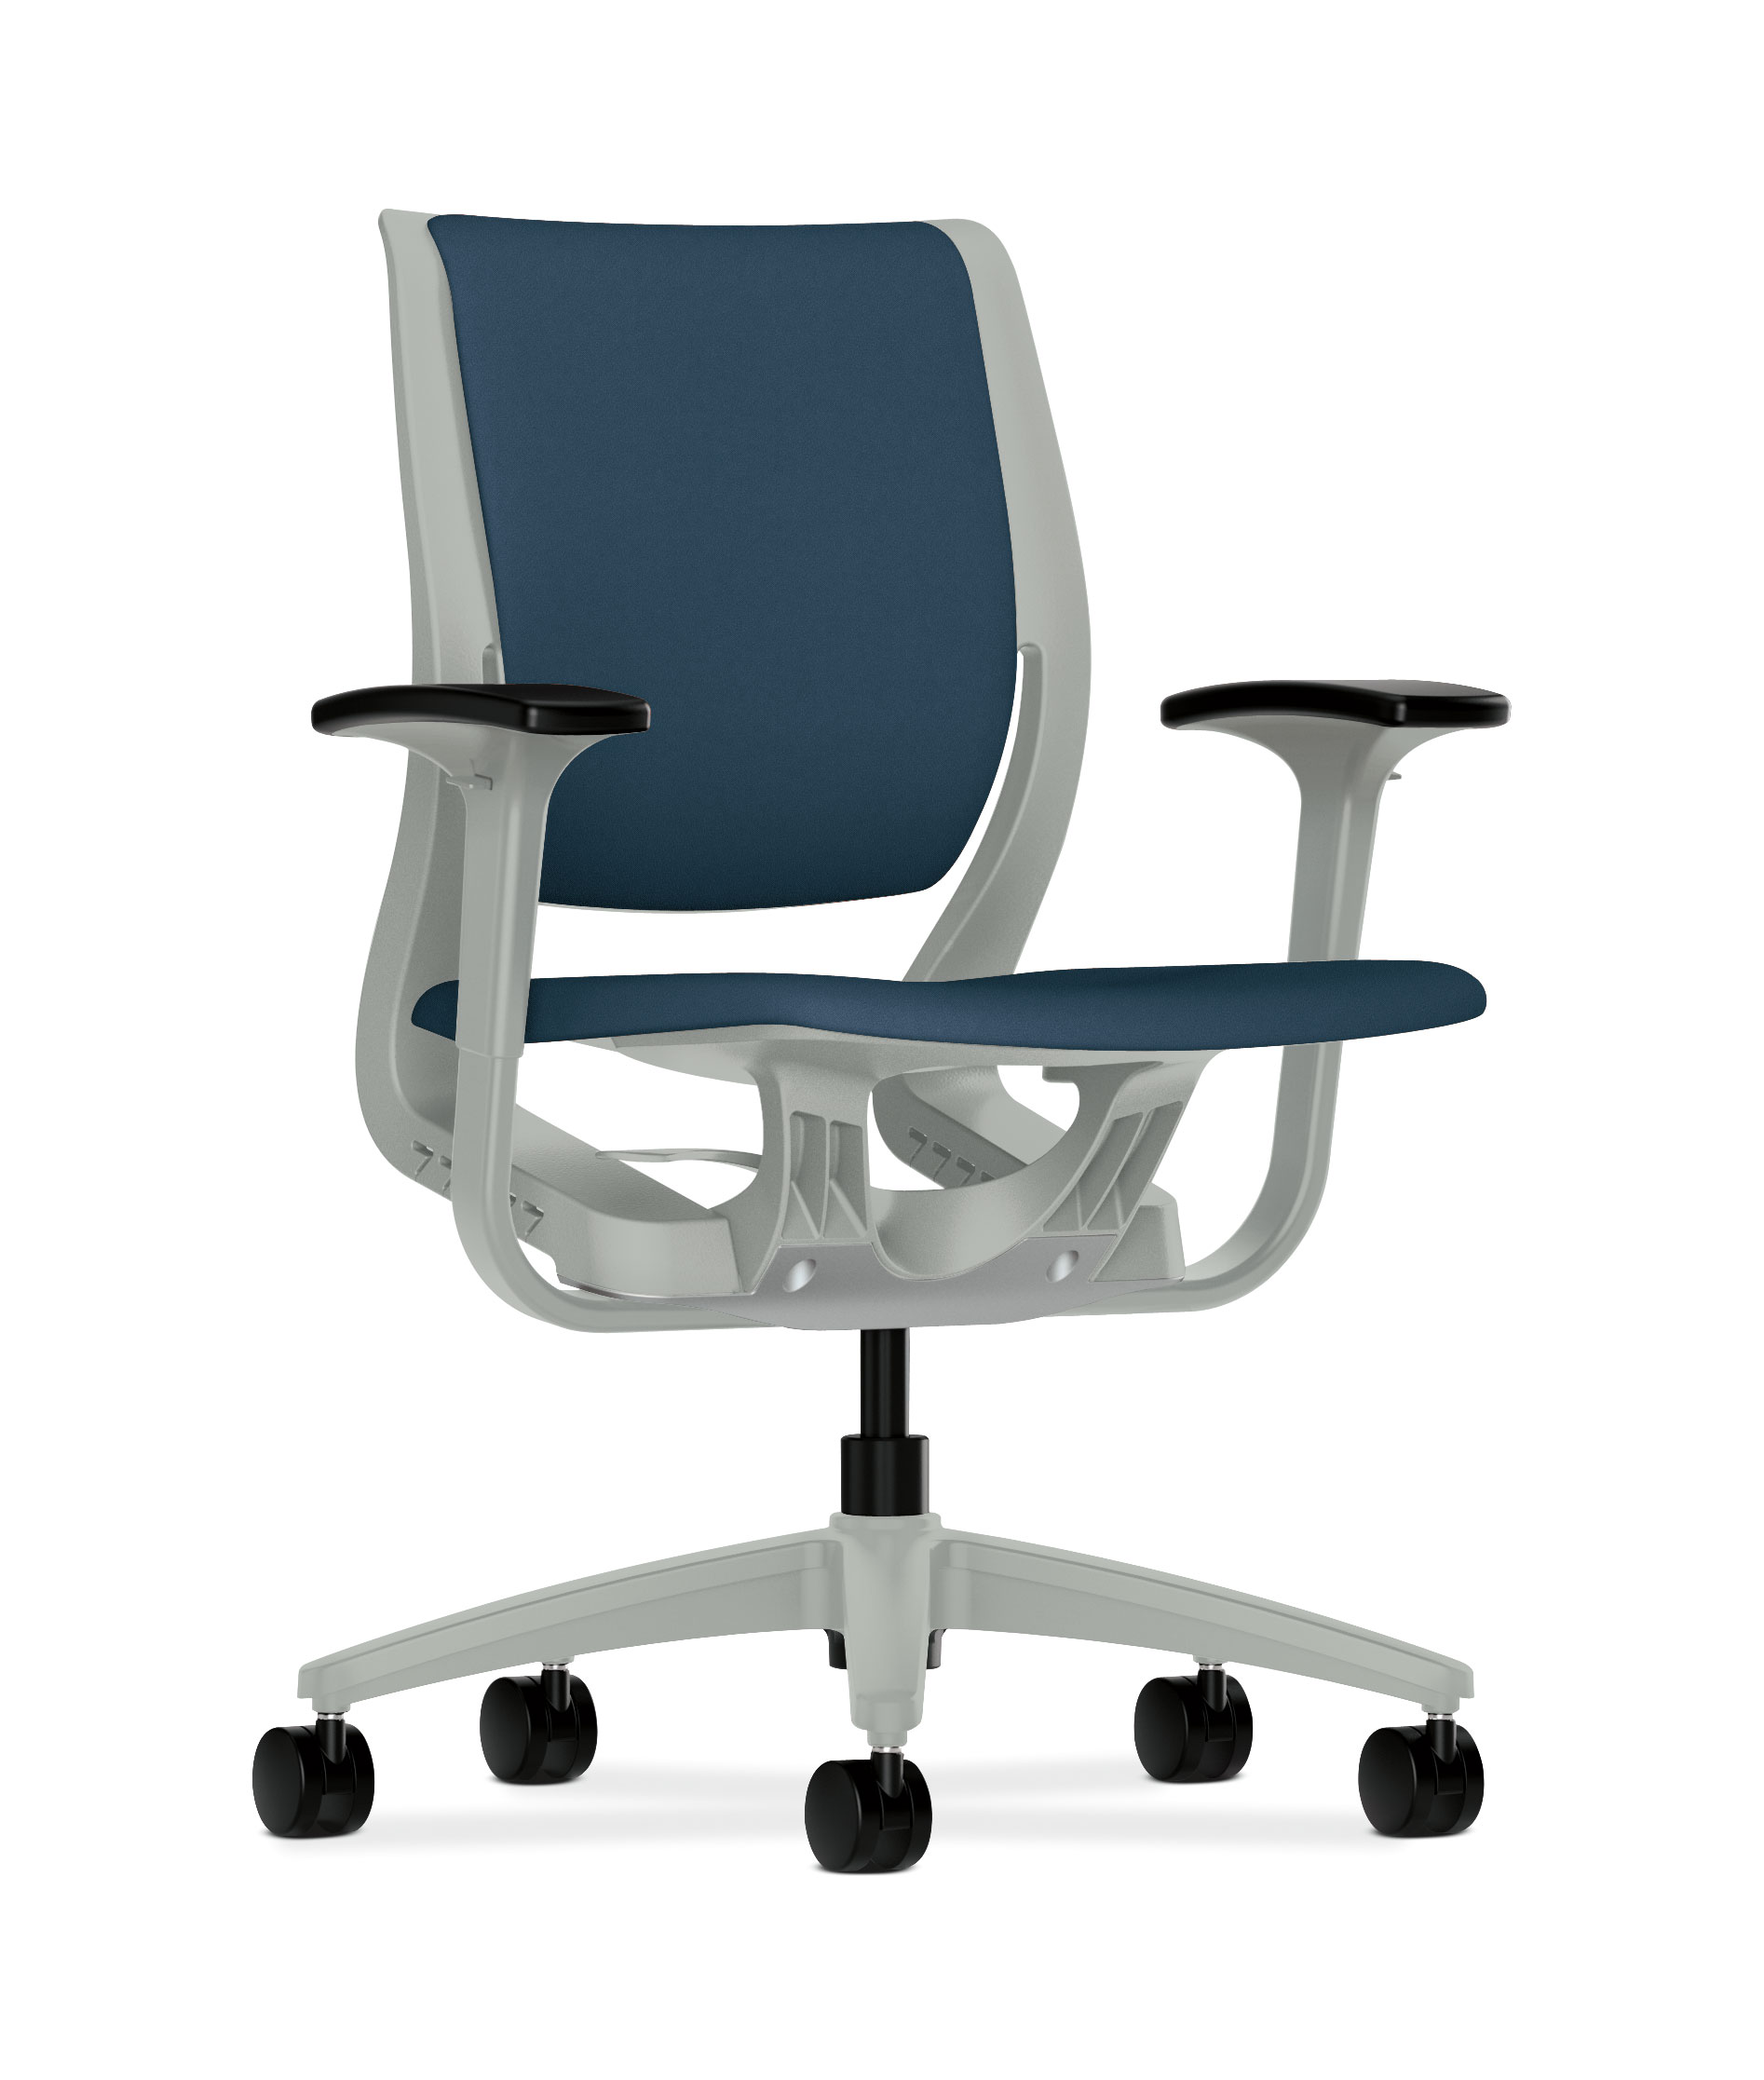 allsteel access chair office chairs hanoi moser